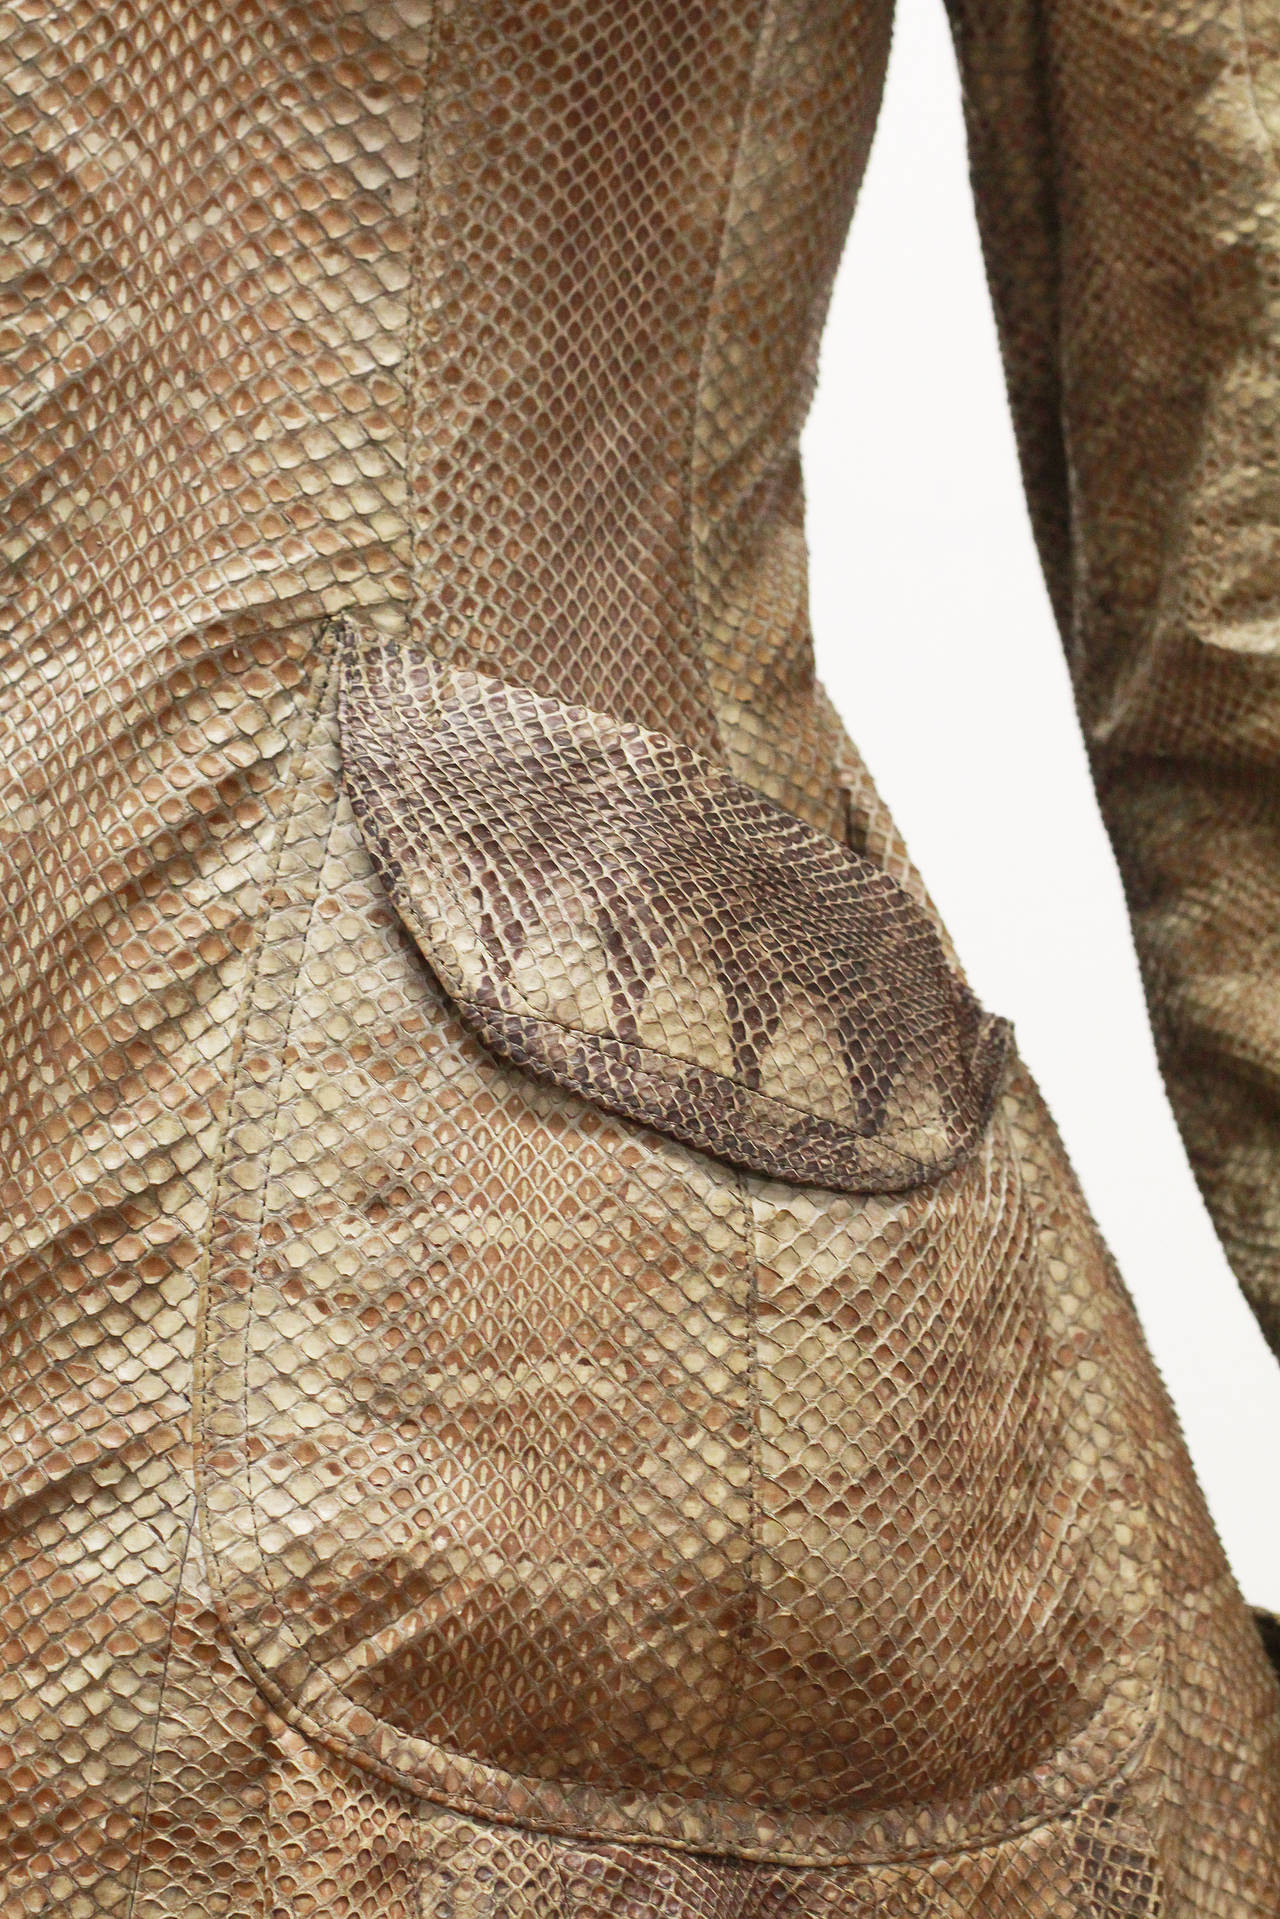 Brown Early and rare Ossie Clark Snakeskin Jacket c. 1966